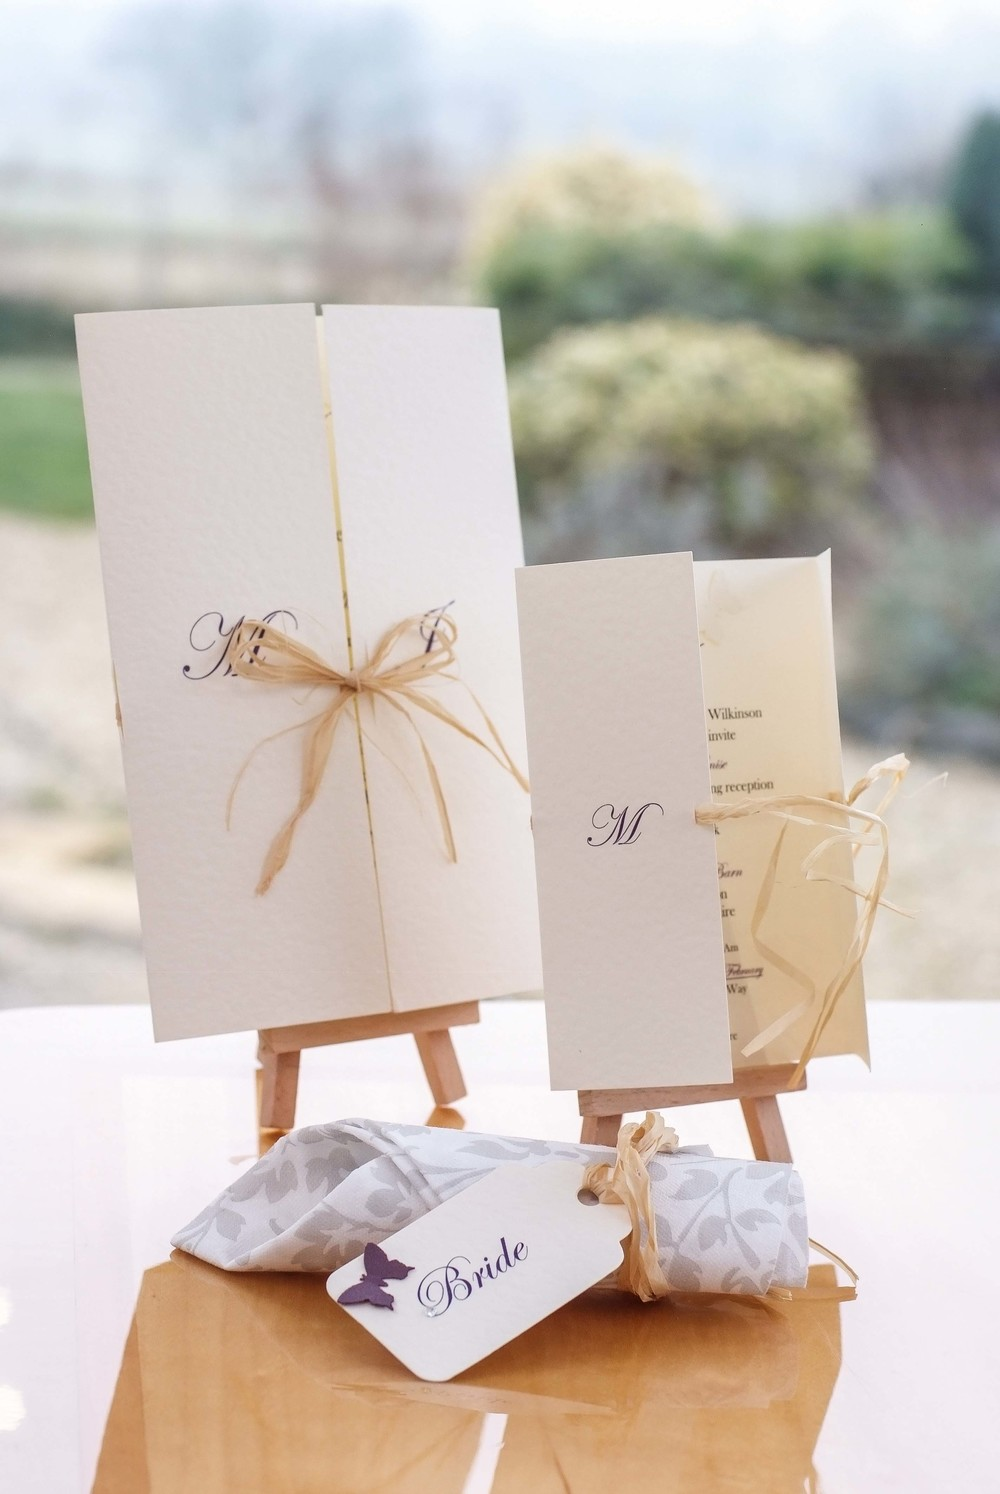 Wedding Invitations and Wedding Stationery Accessories From Oxford in Oxfordshire, UK